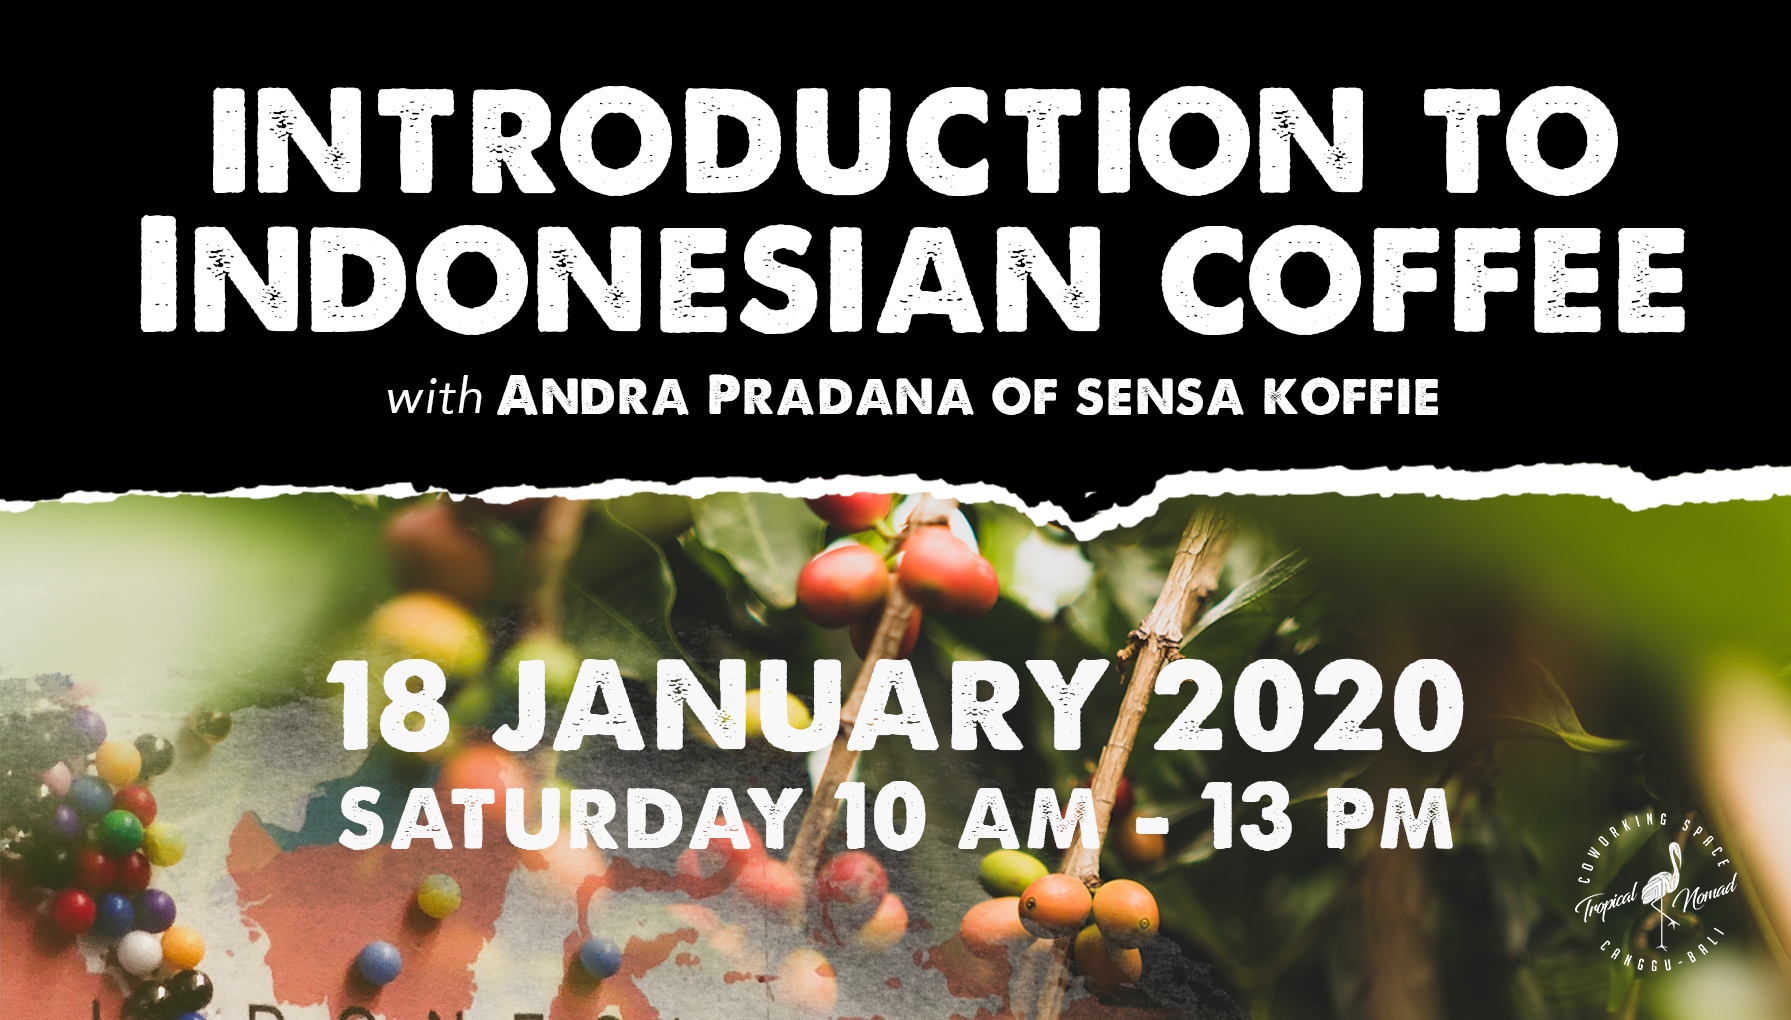 Introduction to Indonesian Coffee